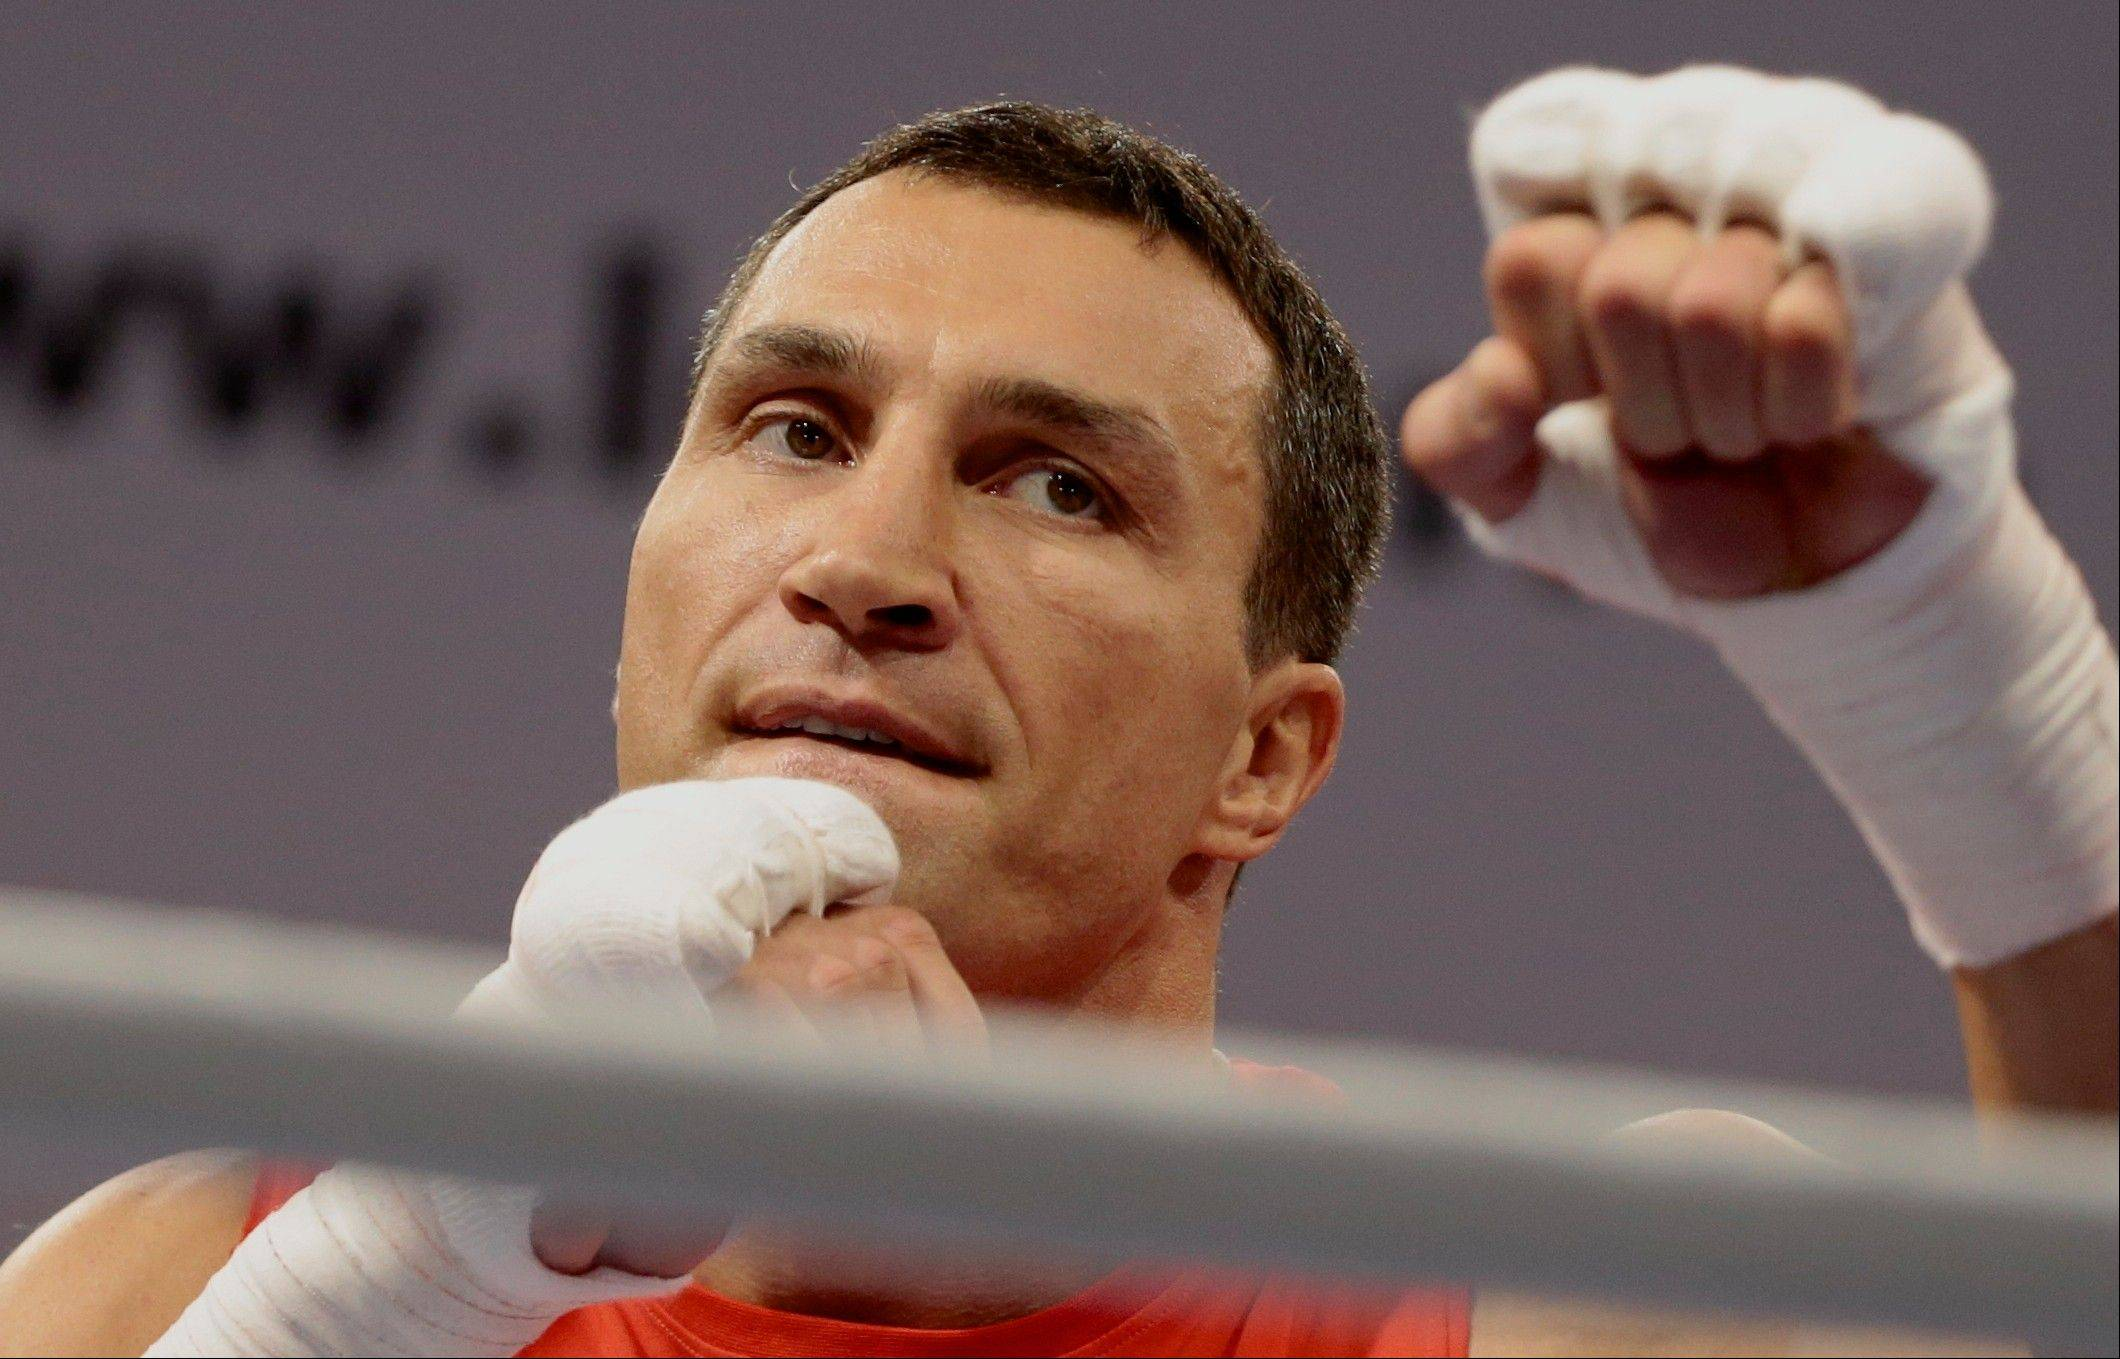 This is a Wednesday, Oct. 2, 2013 file photo of boxer Wladimir Klitschko of Ukraine attends an open training session in Moscow, Russia.Wladimir Klitschko will defend his WBA, IBF, WBO and IBO heavyweight titles against Australian challenger Alex Leapai in Oberhausen, Germany, on April 26.